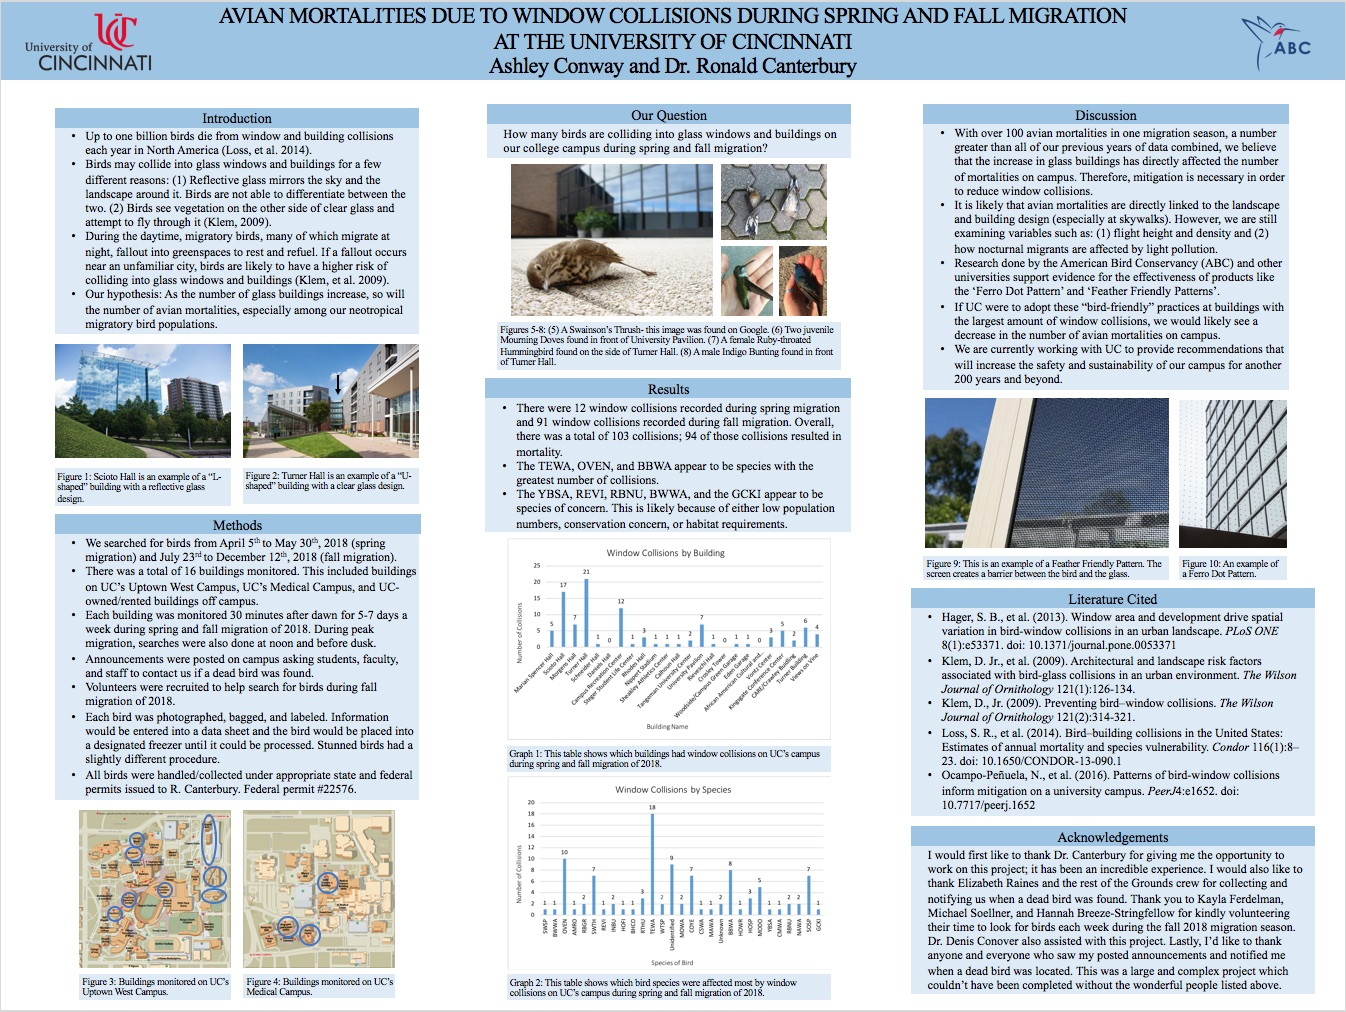 Avian mortalities due to window collisions during spring and fall migration at the University of Cincinnati